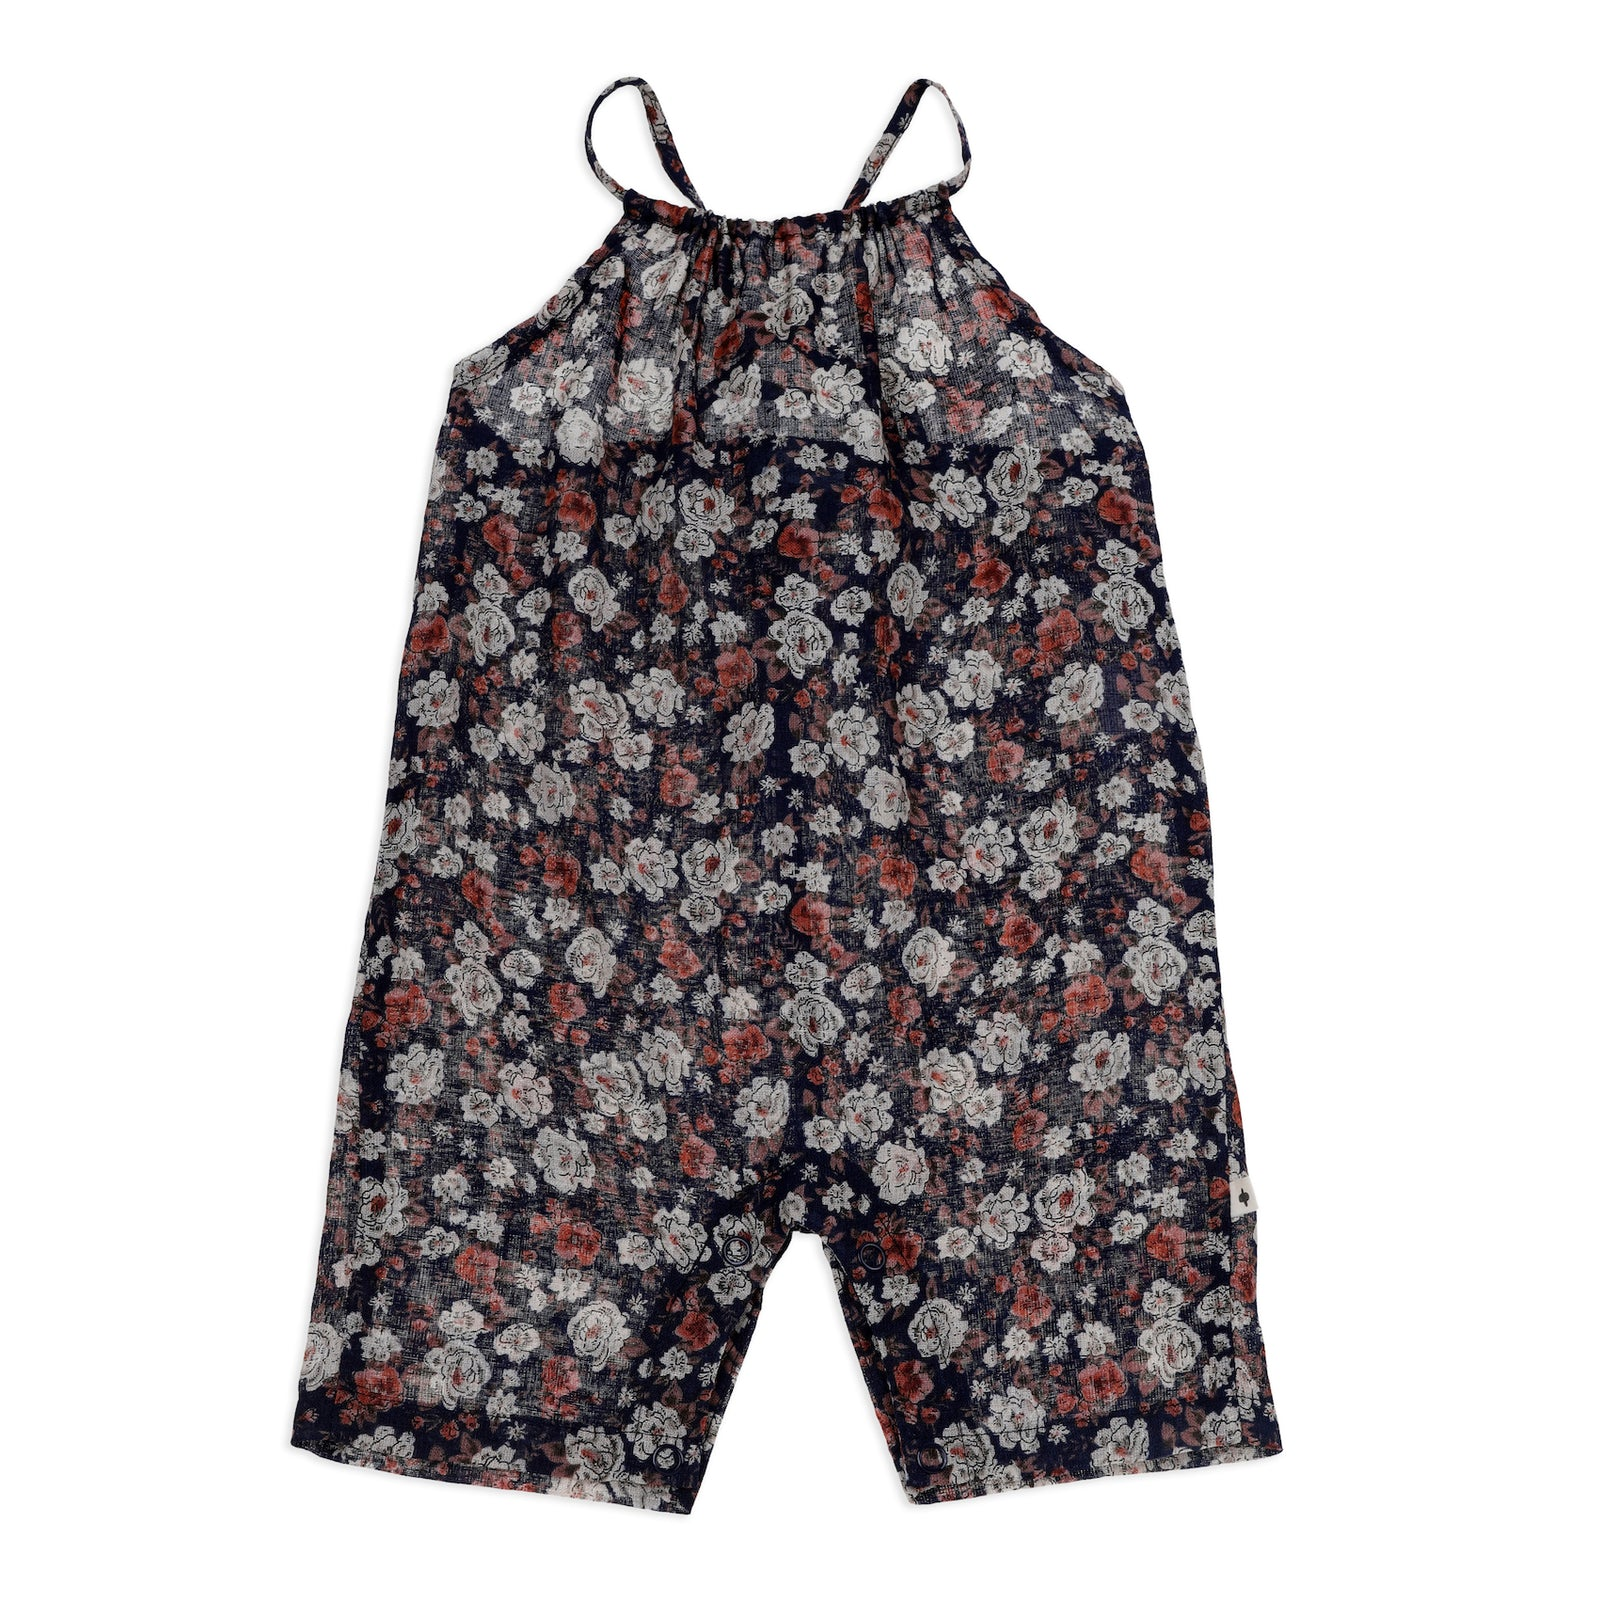 Chloe Overalls Floral